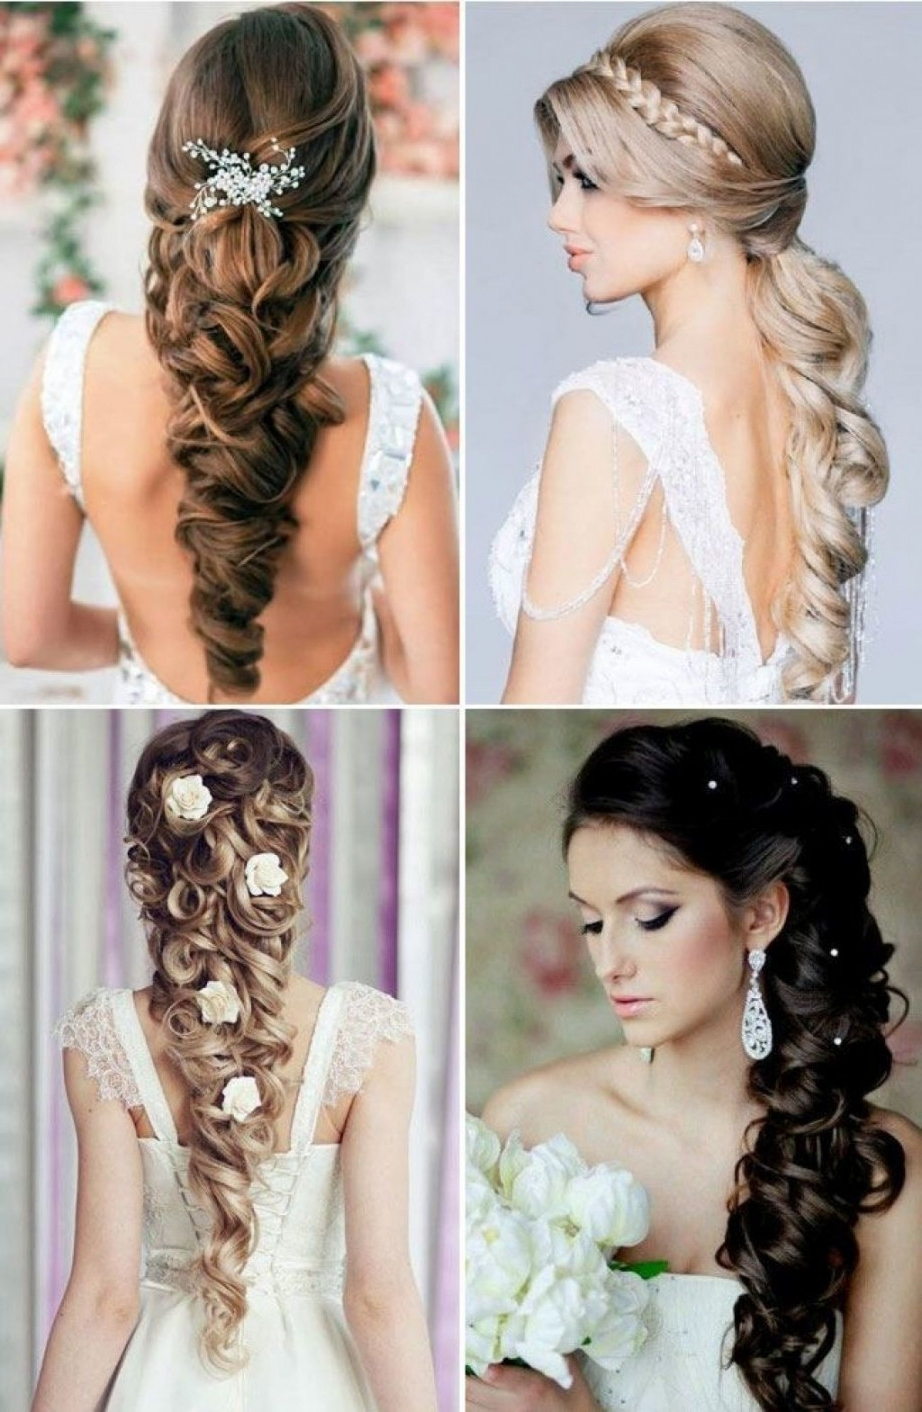 Bridal Hairstyles Wedding Updos Hairstyle Long Hair Long Hairstyle Within Bridal Updo Hairstyles For Long Hair (View 14 of 15)